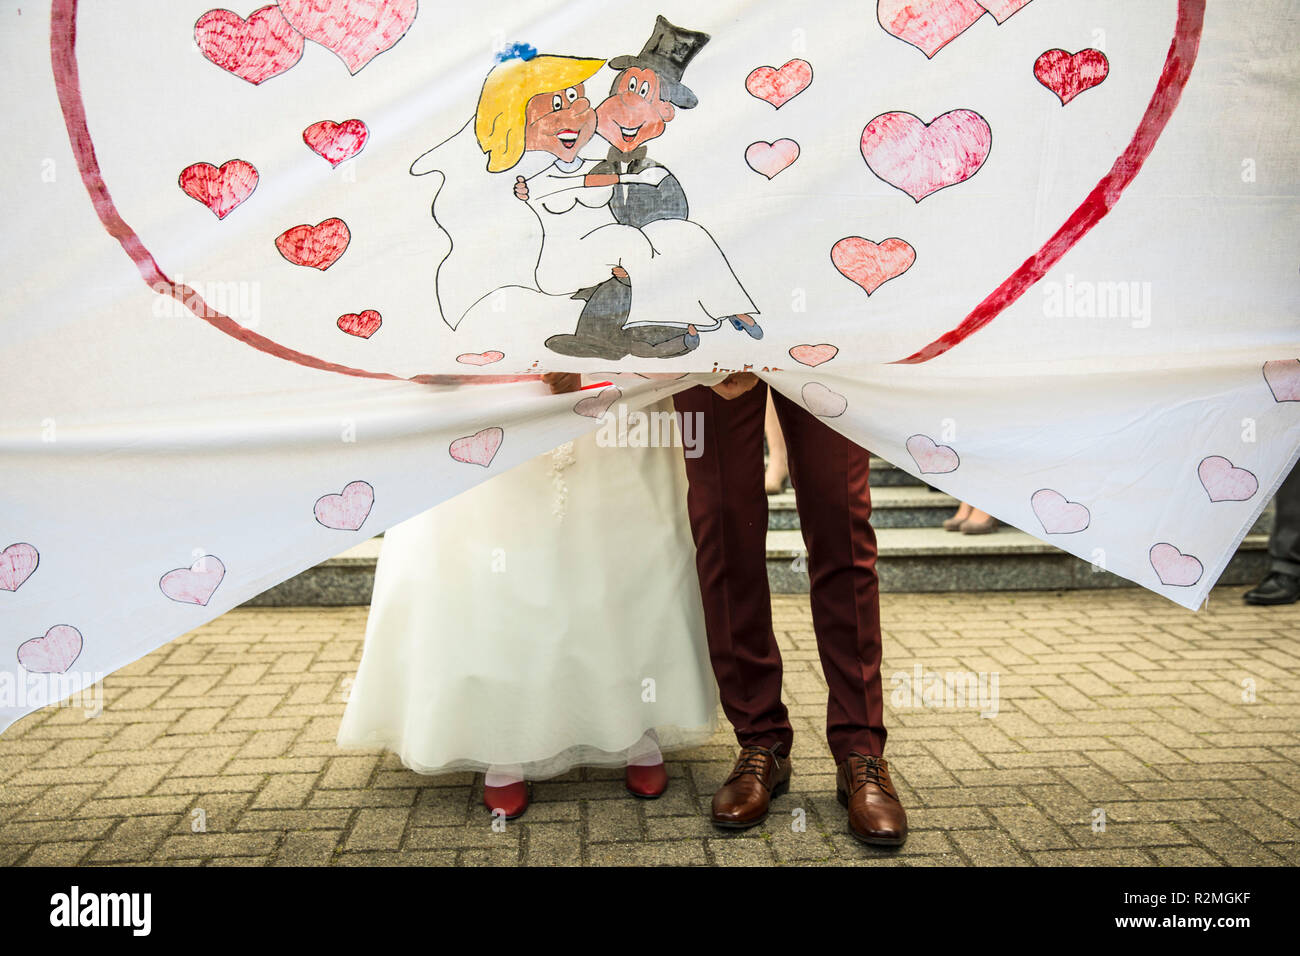 Wedding, couple cutting heart from painted sheet - Stock Image